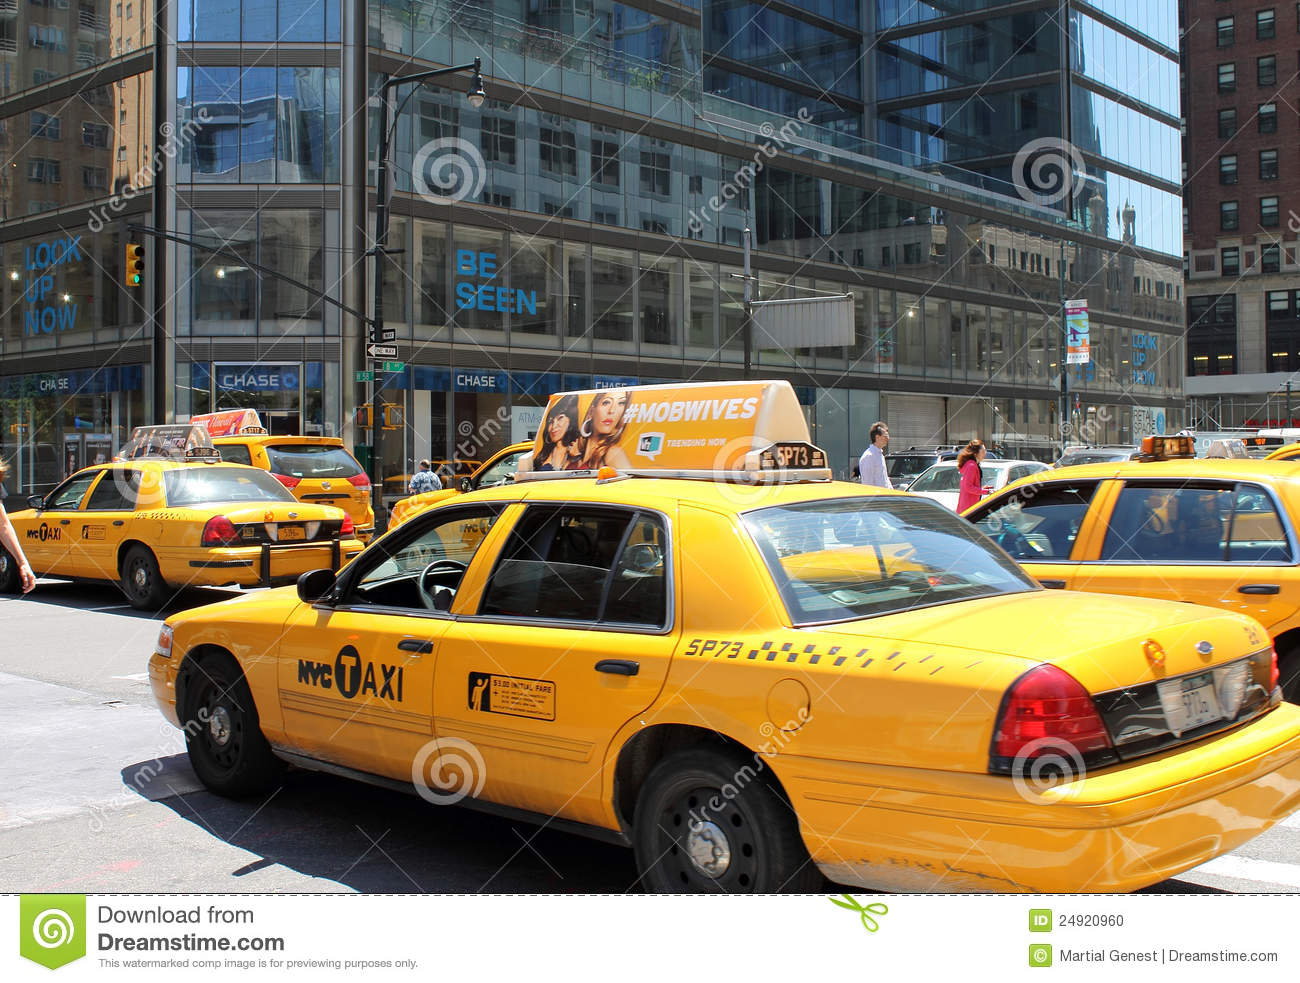 Taxi jaune de new york city image ditorial image 24920960 - Rideau new york taxi jaune ...